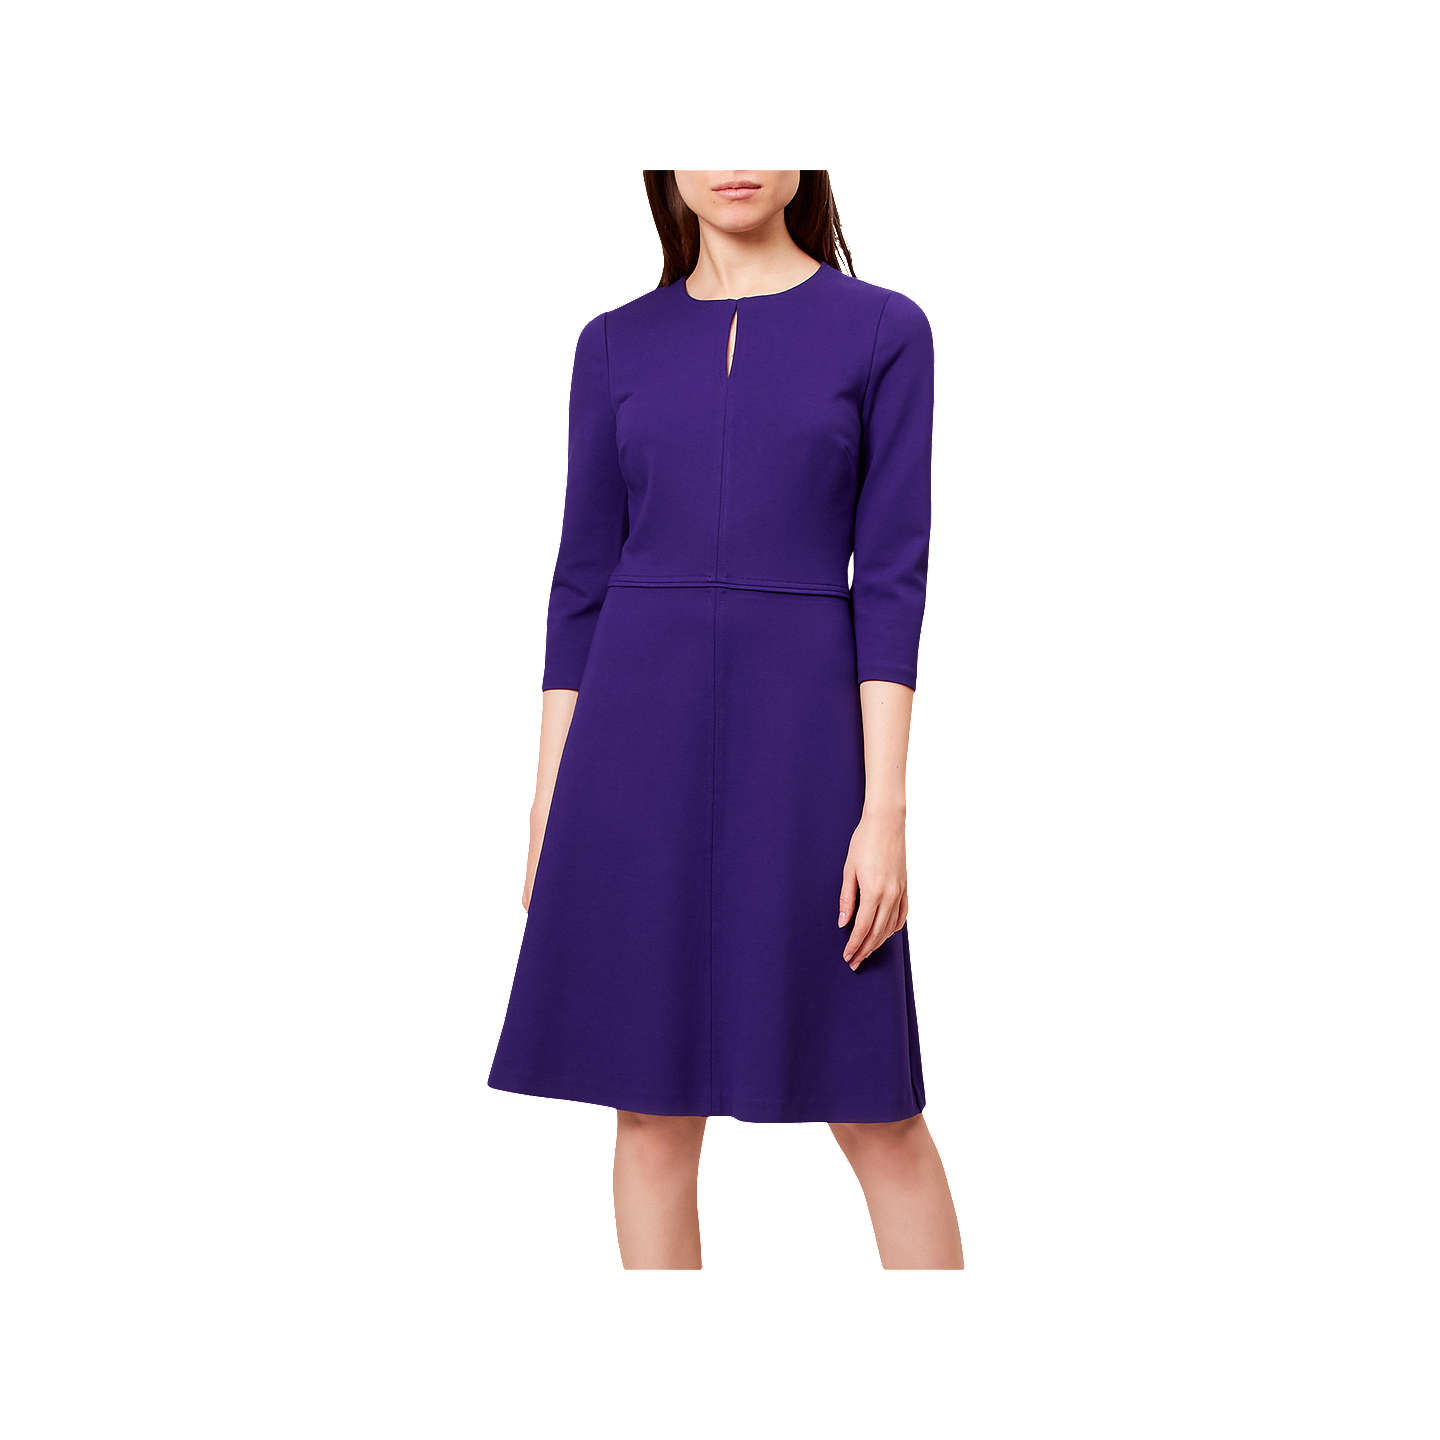 Hobbs Anais Dress, Royal Purple at John Lewis